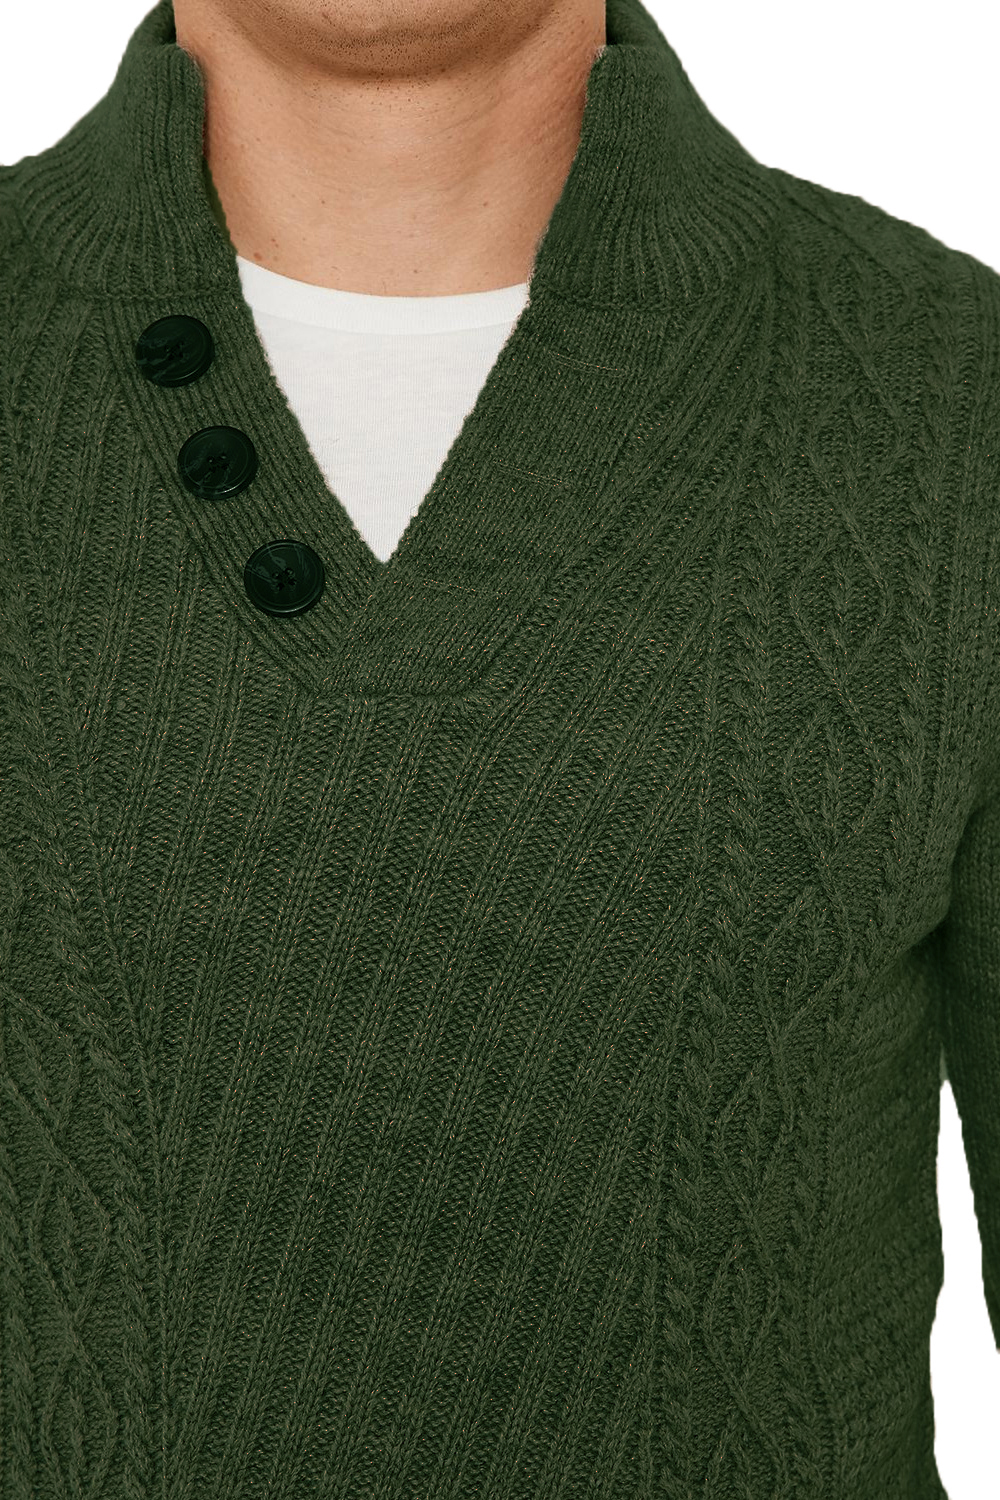 Threadbare-Wray-Mens-Top-Cable-Knited-Designer-Luxurious-Wool-Mix-Raglan-Jumpers thumbnail 18